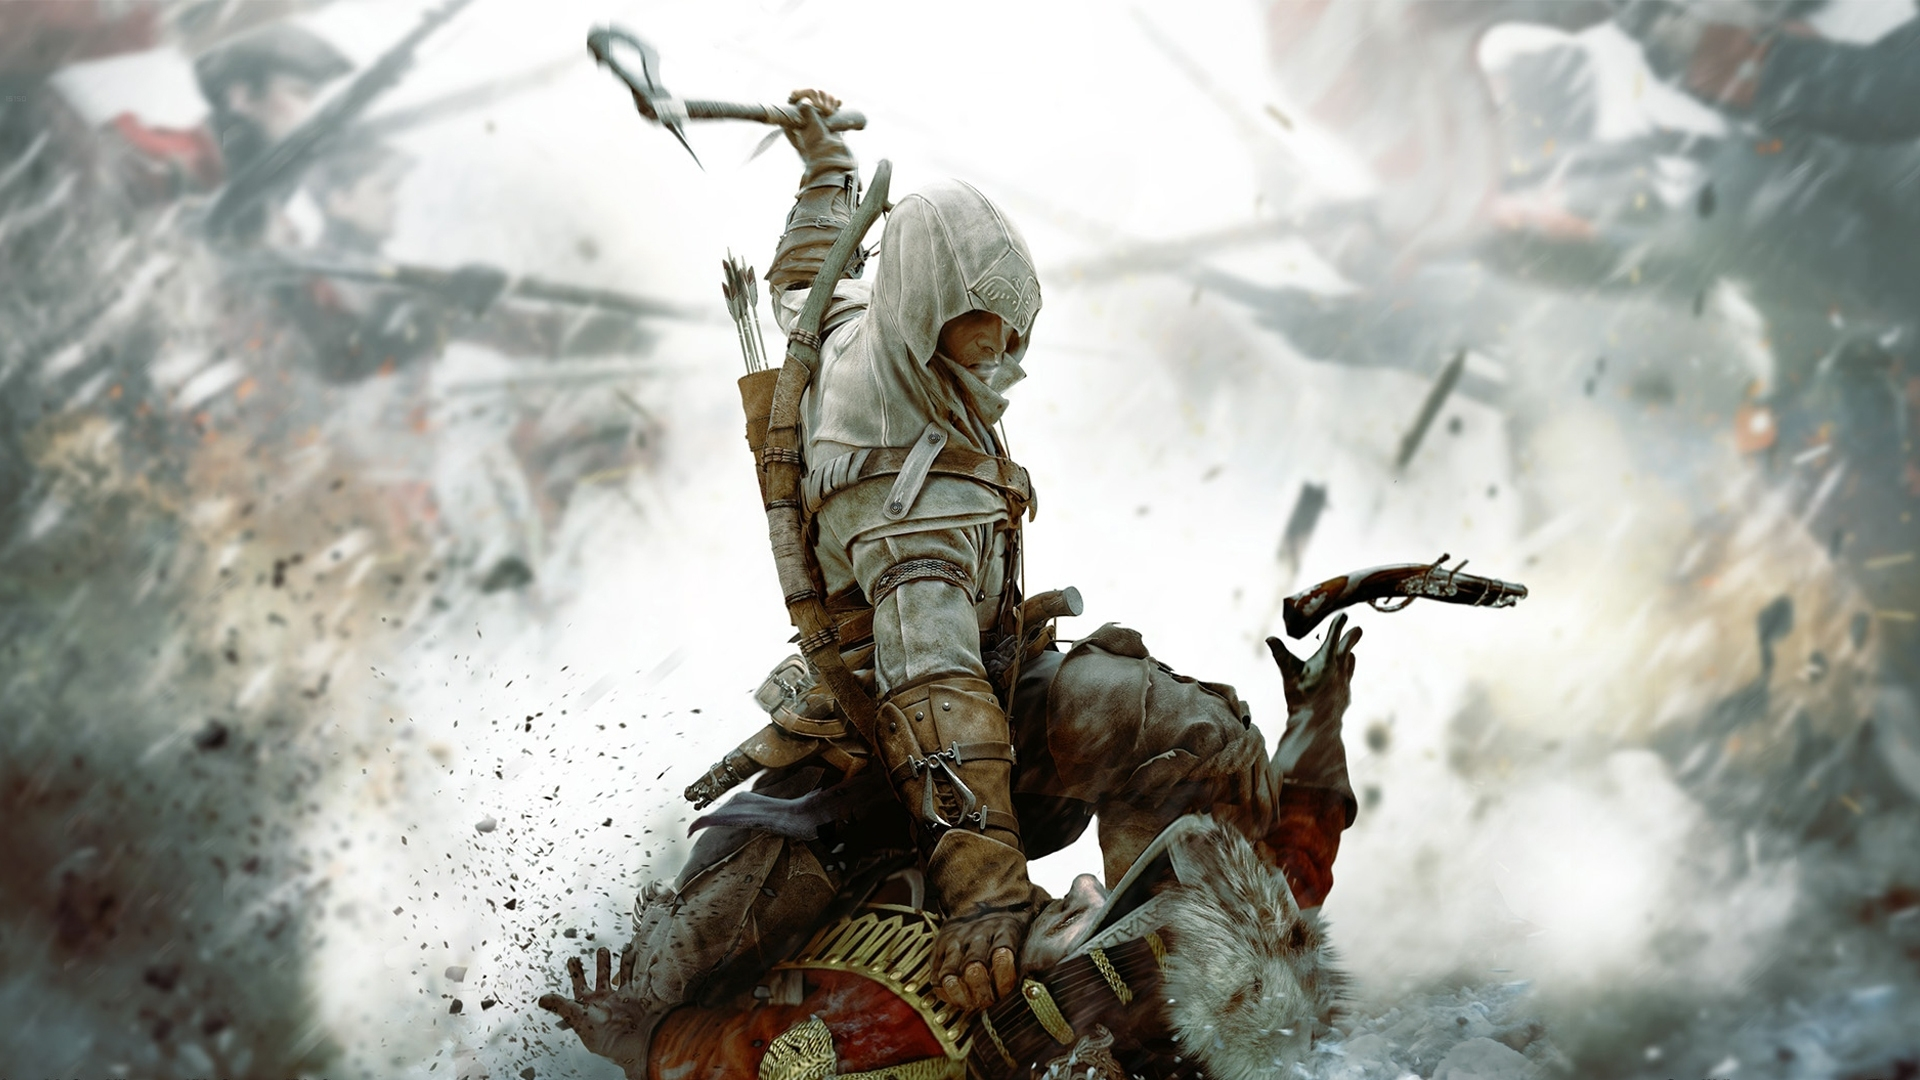 assassin's creed iii full hd fond d'écran and arrière-plan